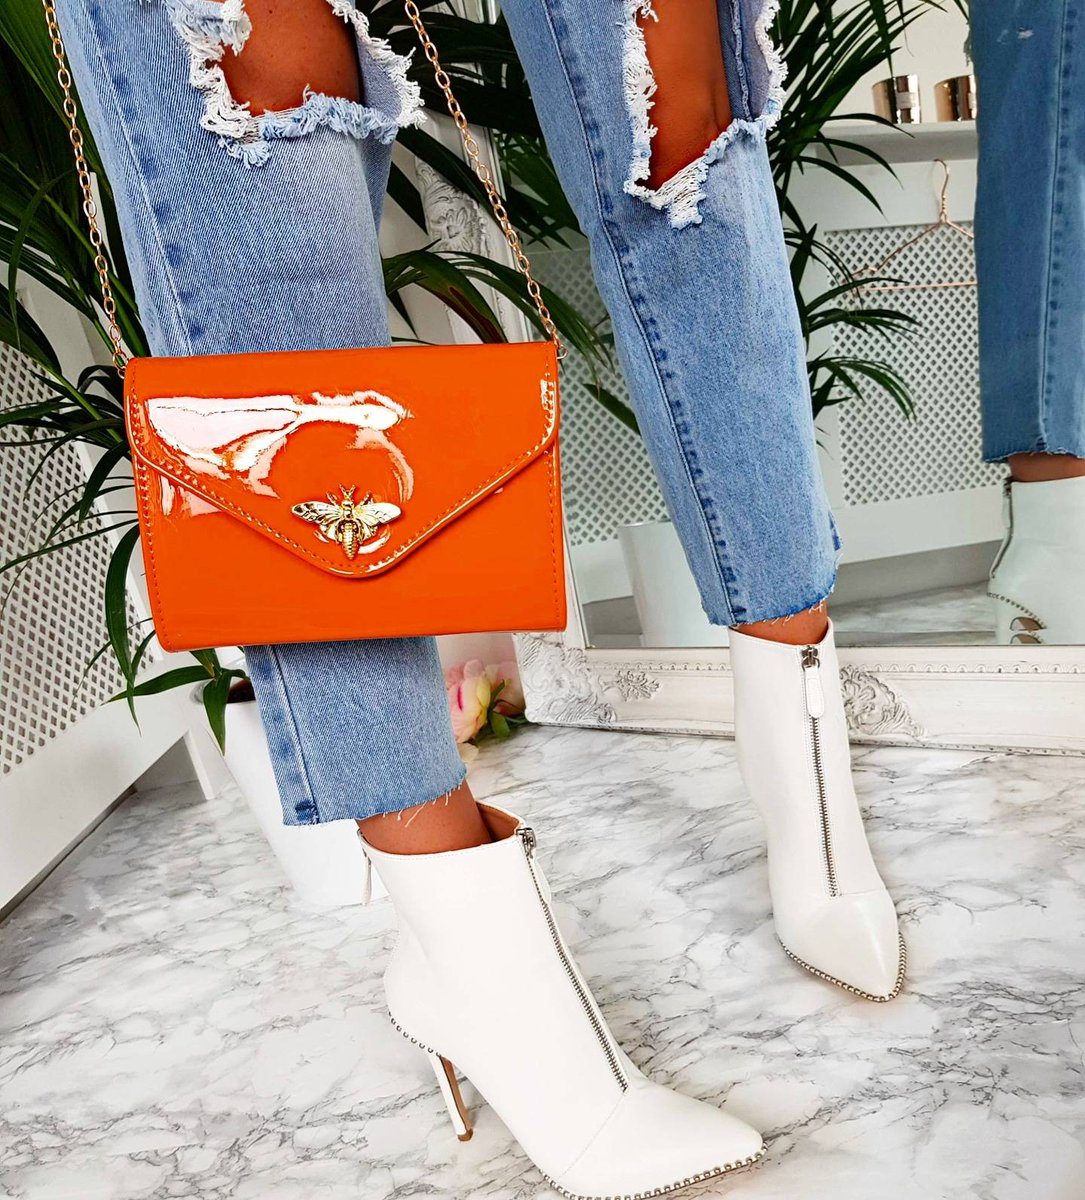 Image for Cute Booties Boo 🔥🔥🔥  Shop these HOT new arrivals here >> https://t.co/ozLOJjCy1D #myikrush https://t.co/XmSVnDE6iG